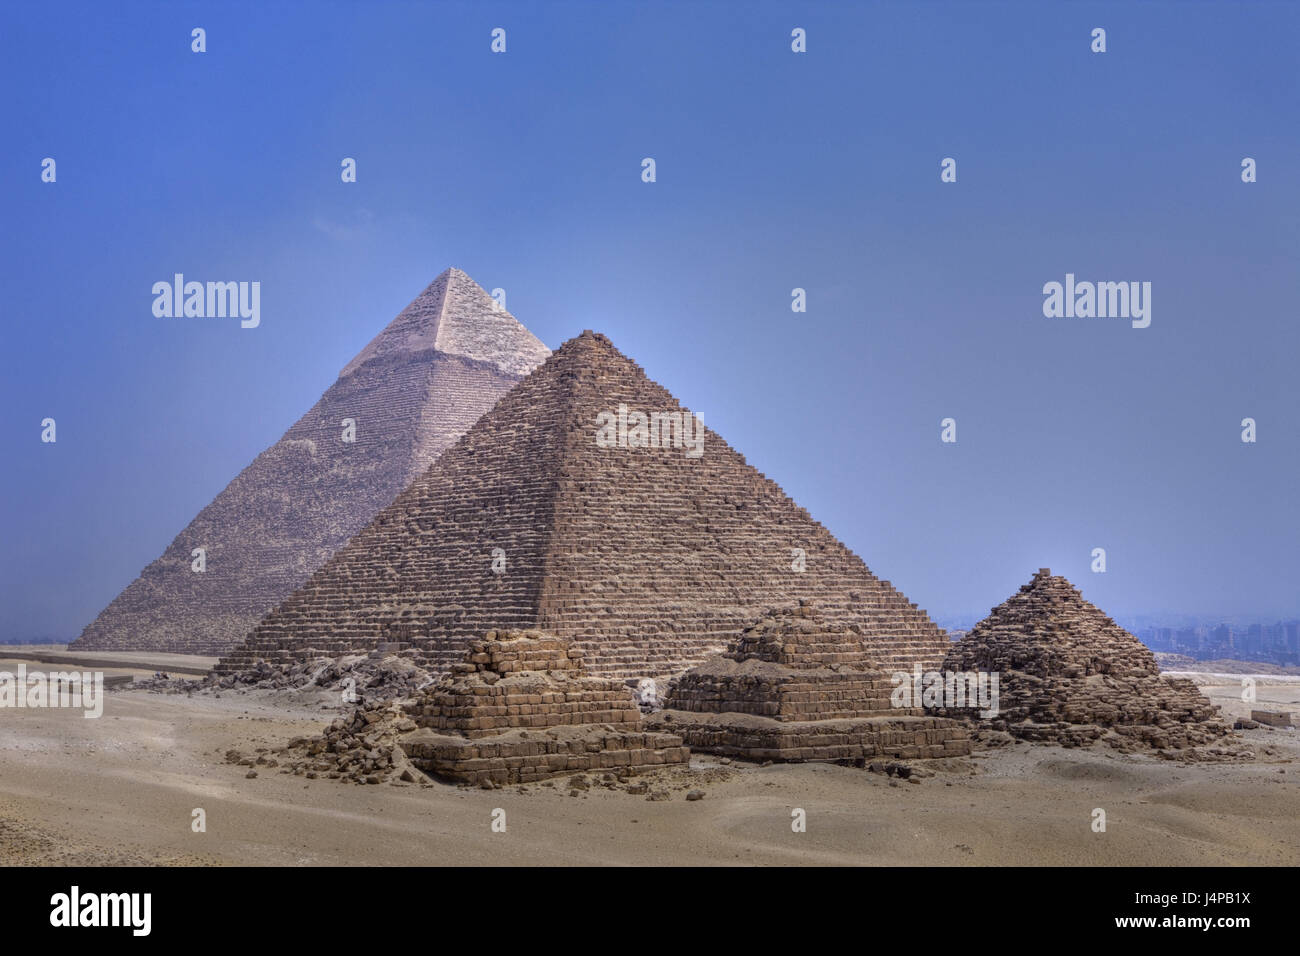 Pyramids of Gizeh, Egypt, Cairo, - Stock Image